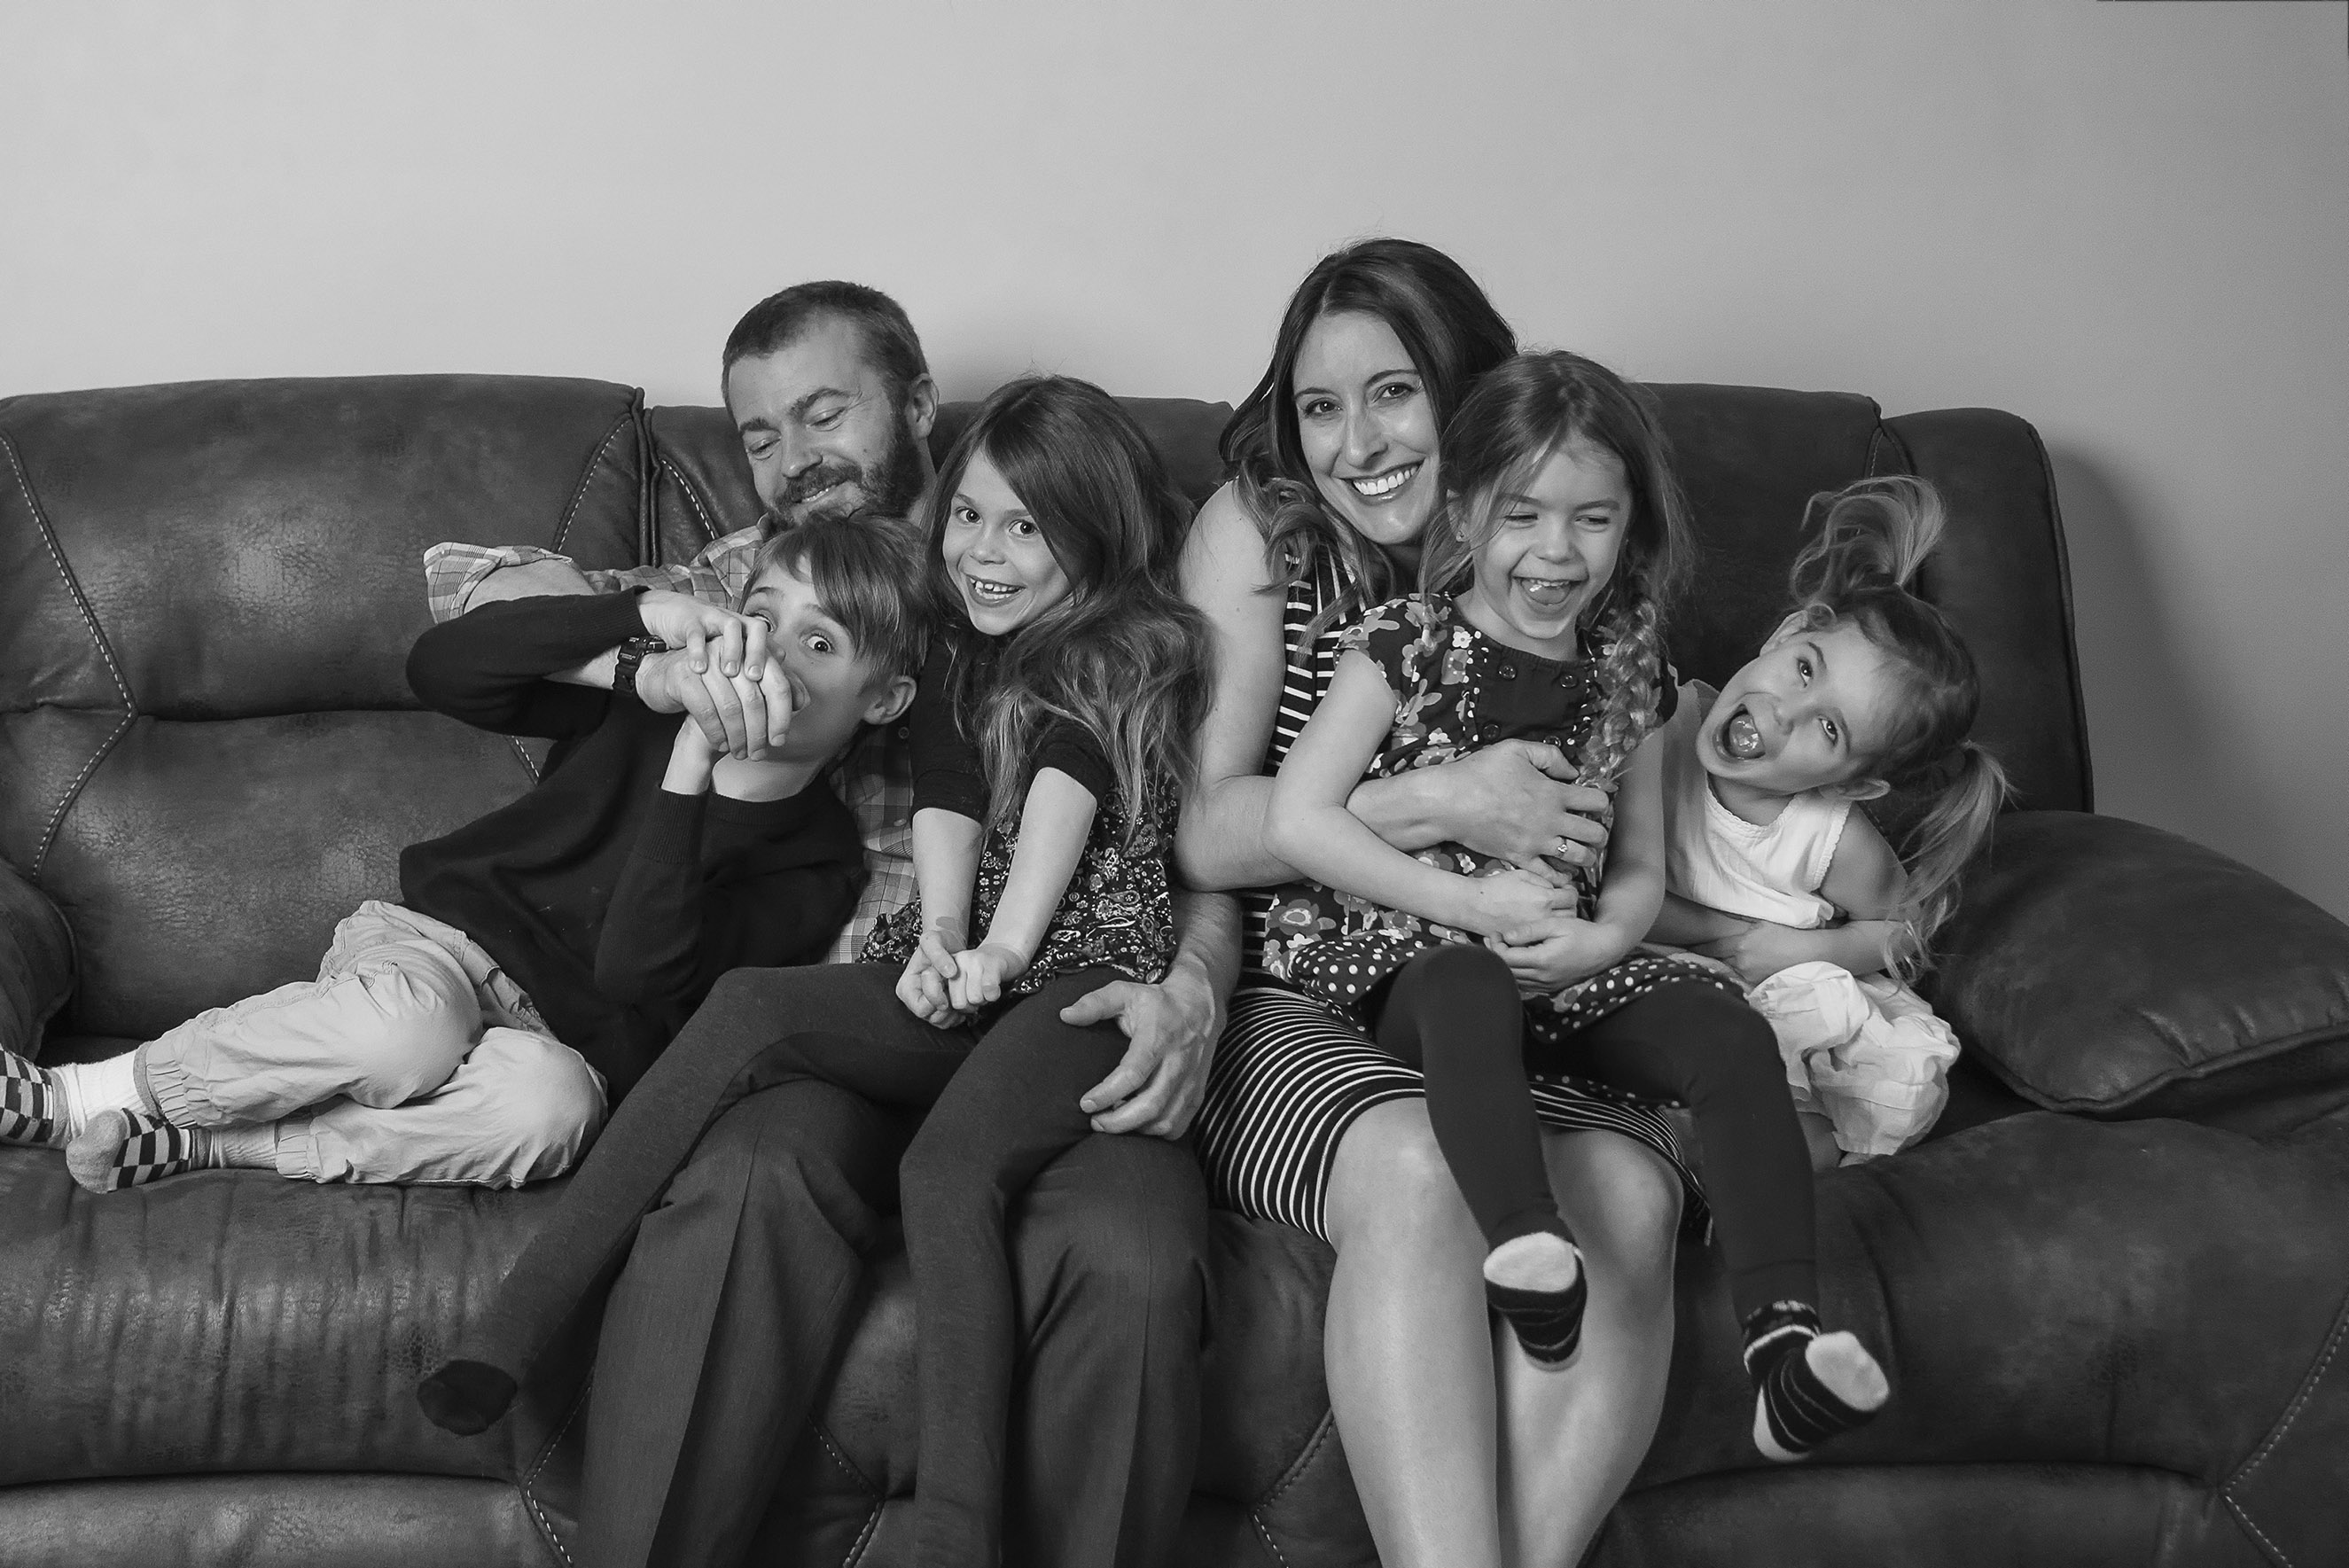 Waterloo North Family having fun on their couch in a lifestyle image